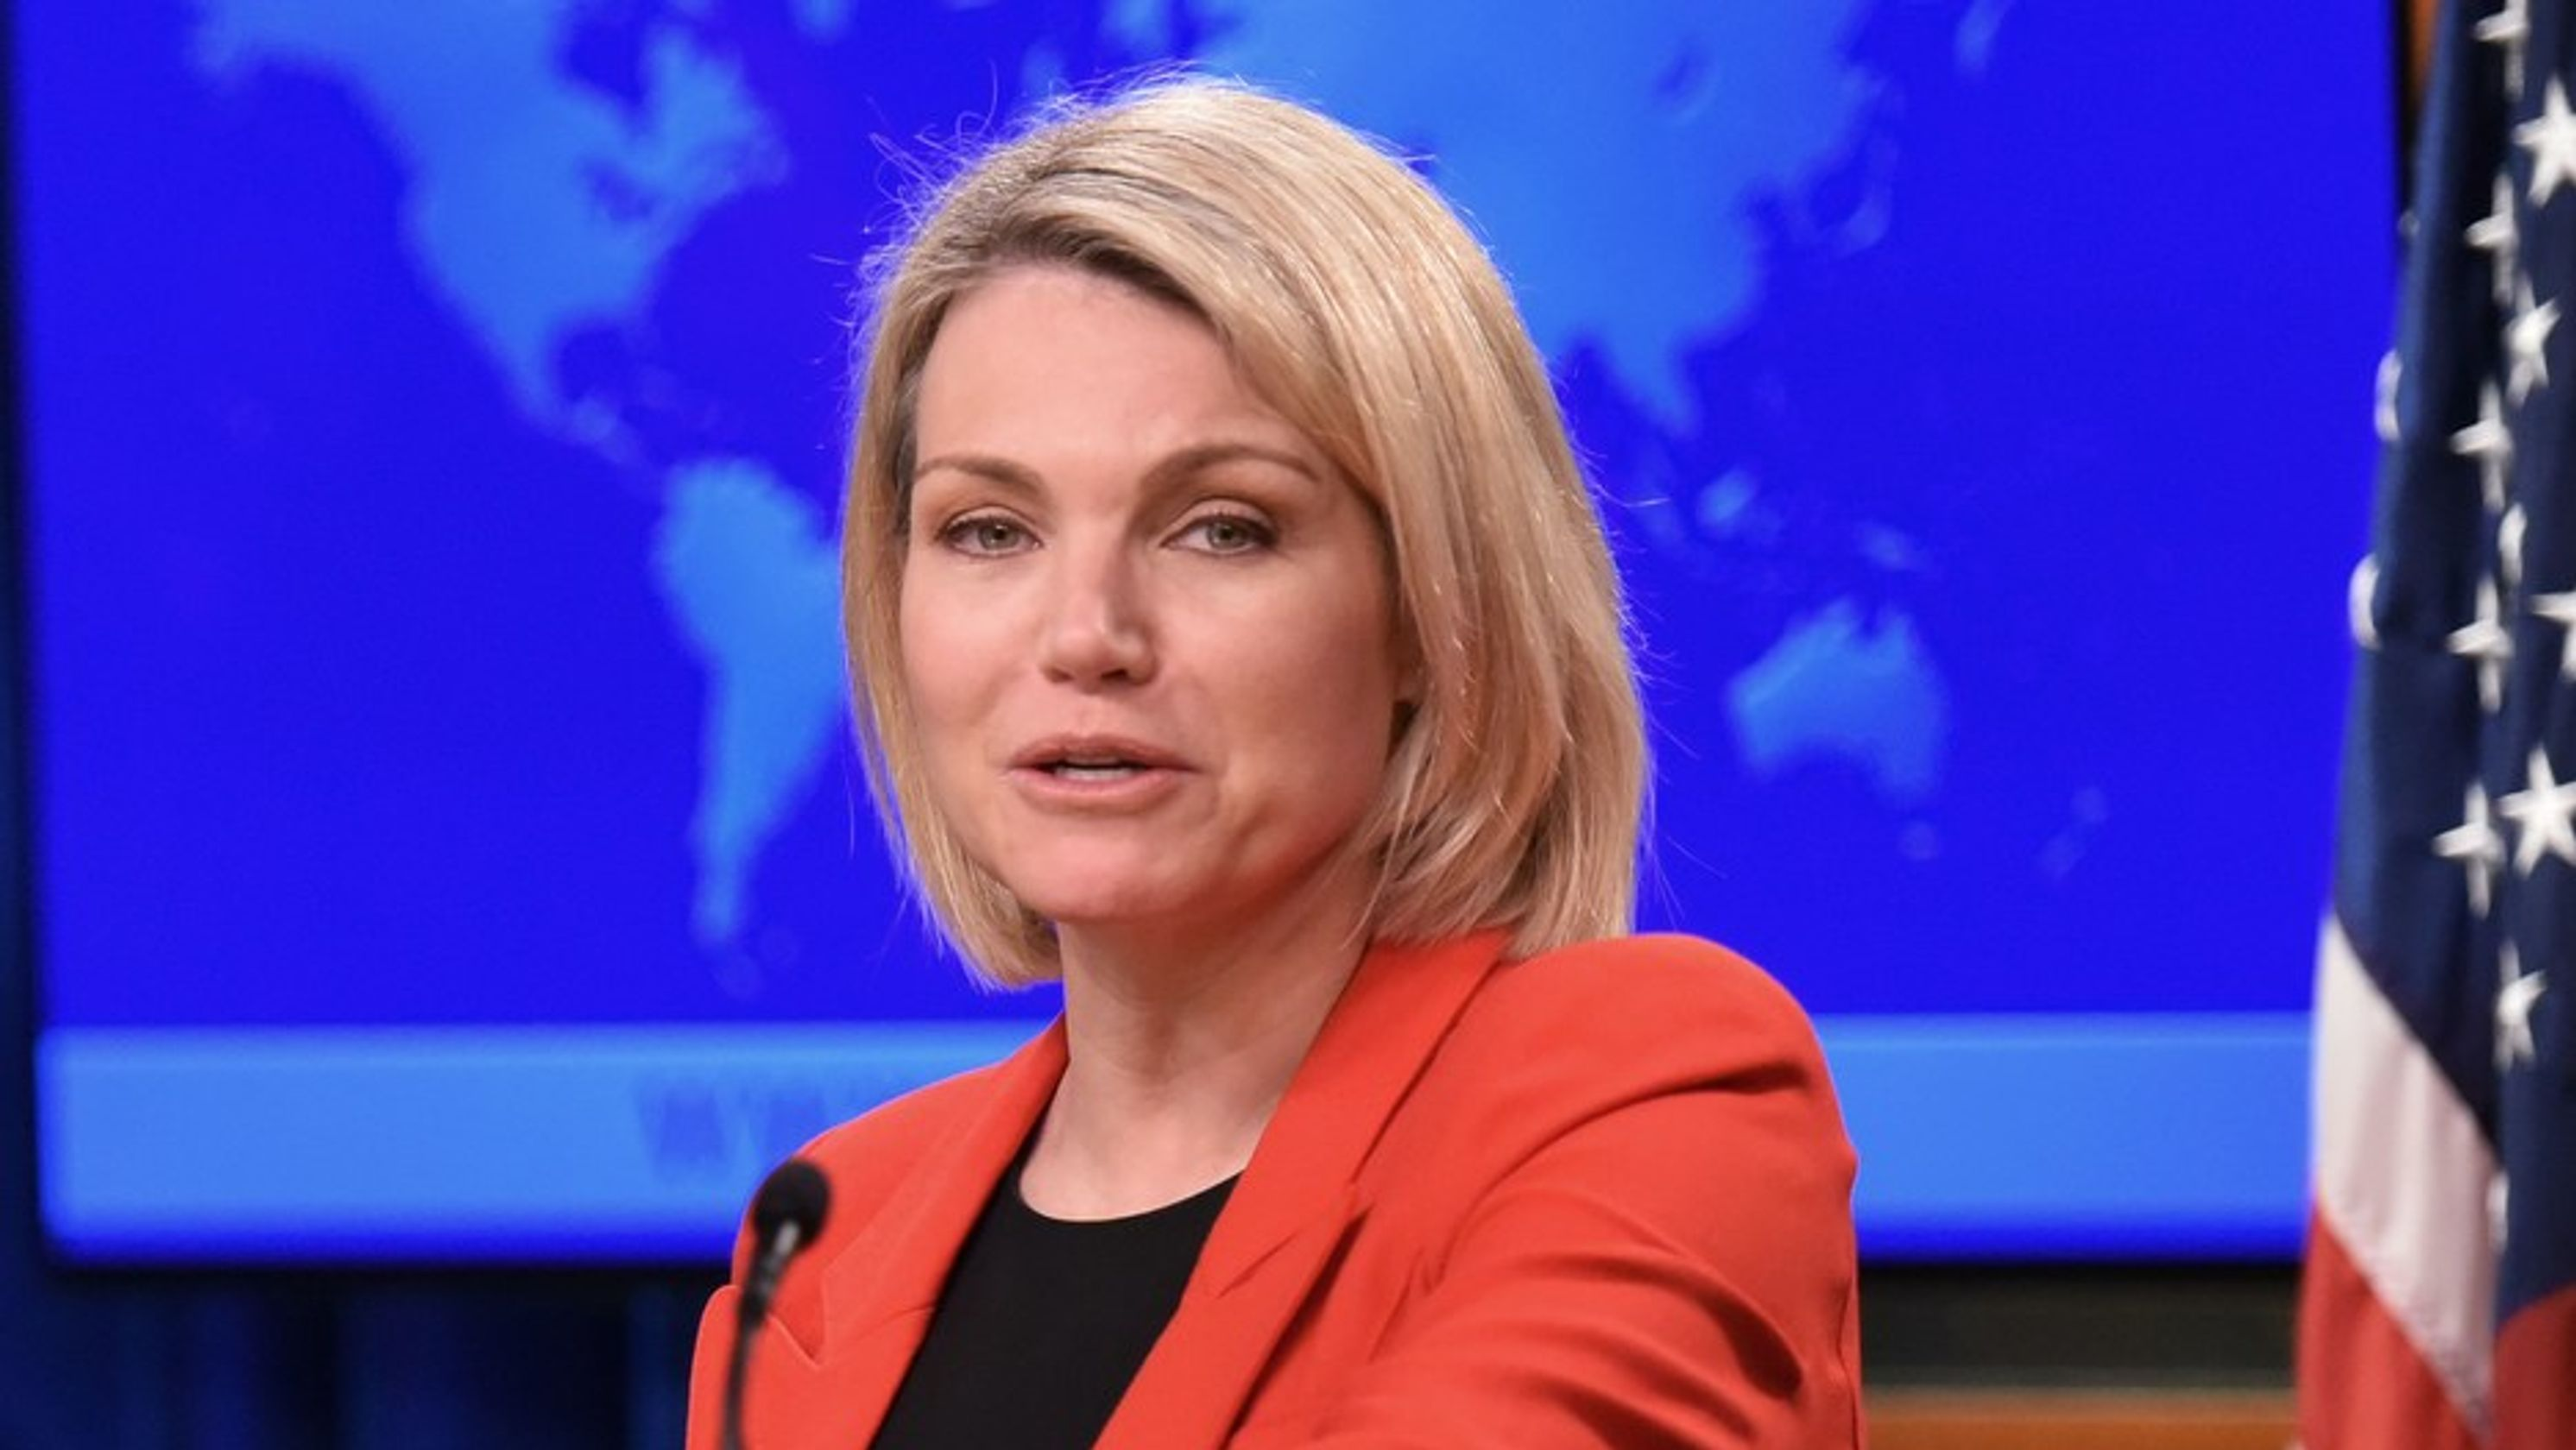 Donald Trump to name Heather Nauert as next UN ambassador, reports say